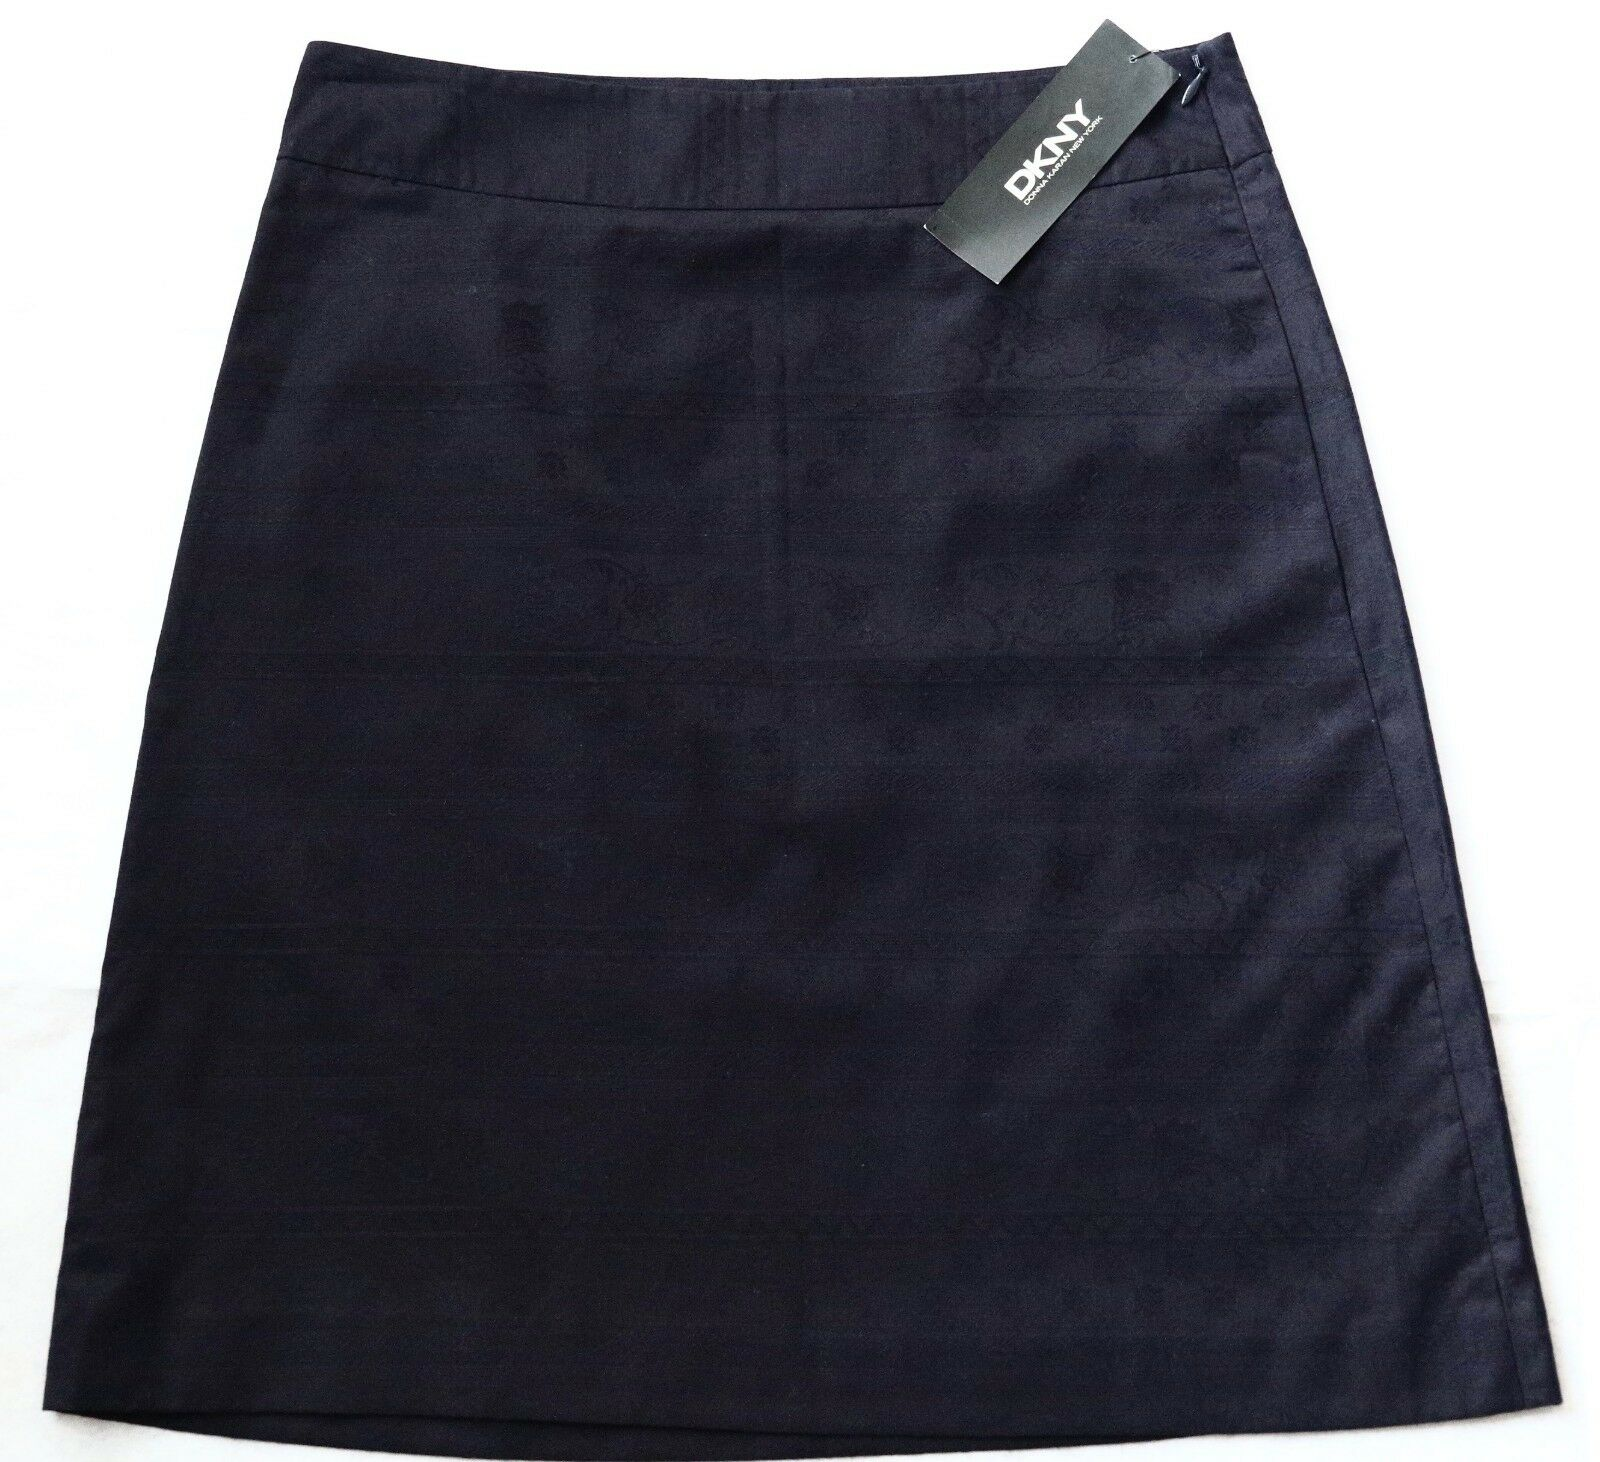 225 NWT DKNY women Karan New York Skirt 4 Small S Navy bluee Cotton Pencil New